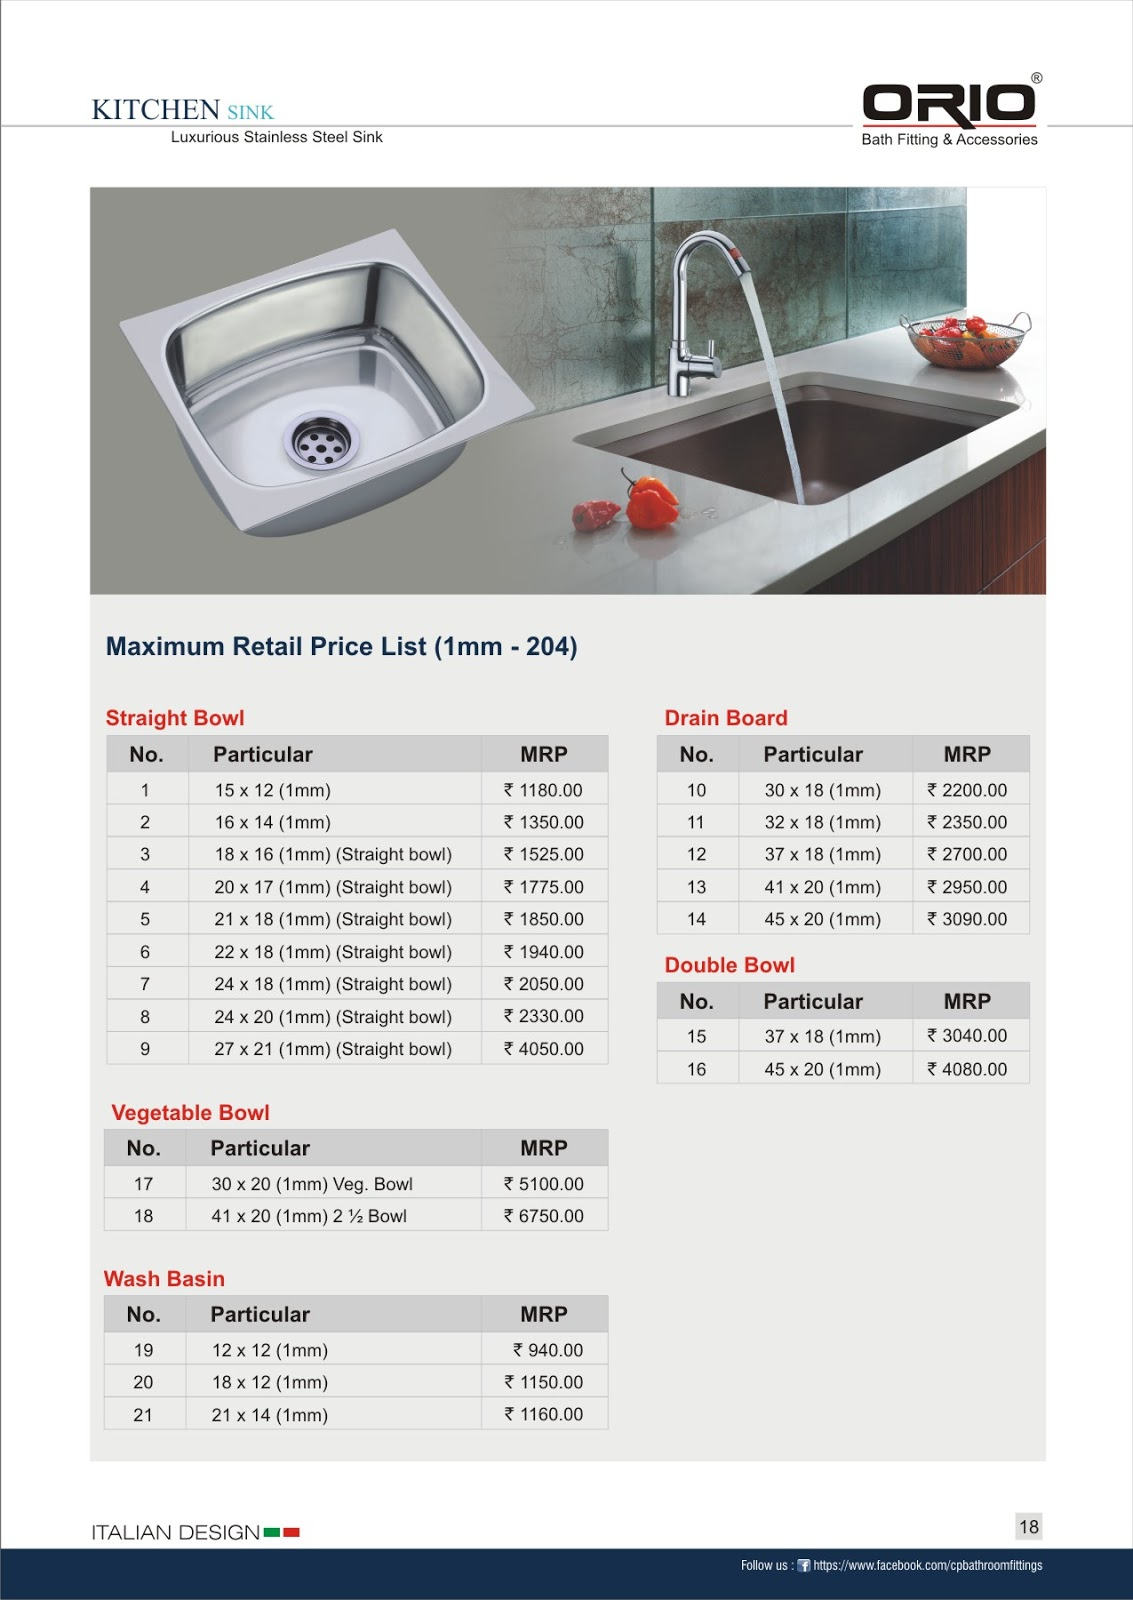 Bathroom fitting manufacturers - We Mahavir Metal Industries Iso 9001 2008 Certified Company Manufacturing Brass Chrome Plated Cp Bathroom Fittings Under The Brand Name Orio